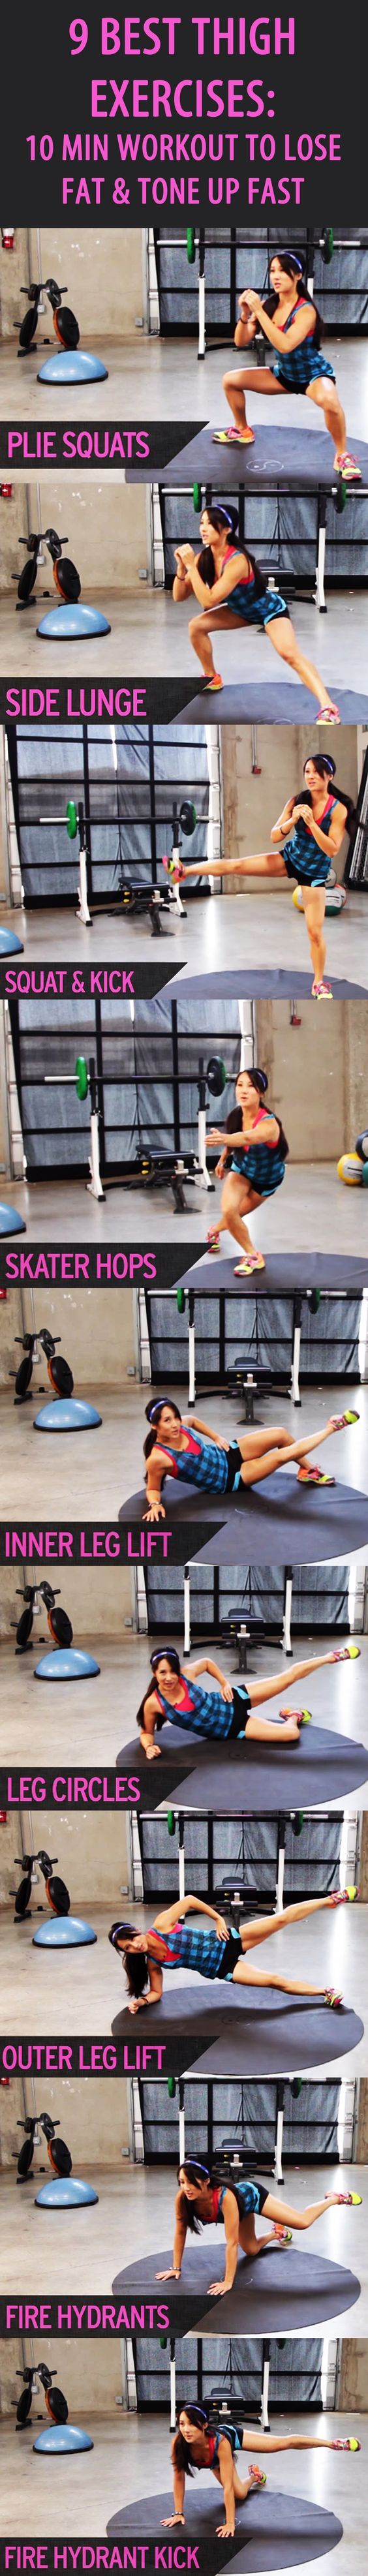 9 BEST THIGH EXERCISES: Our favorite fitness trainer Kelsey Lee